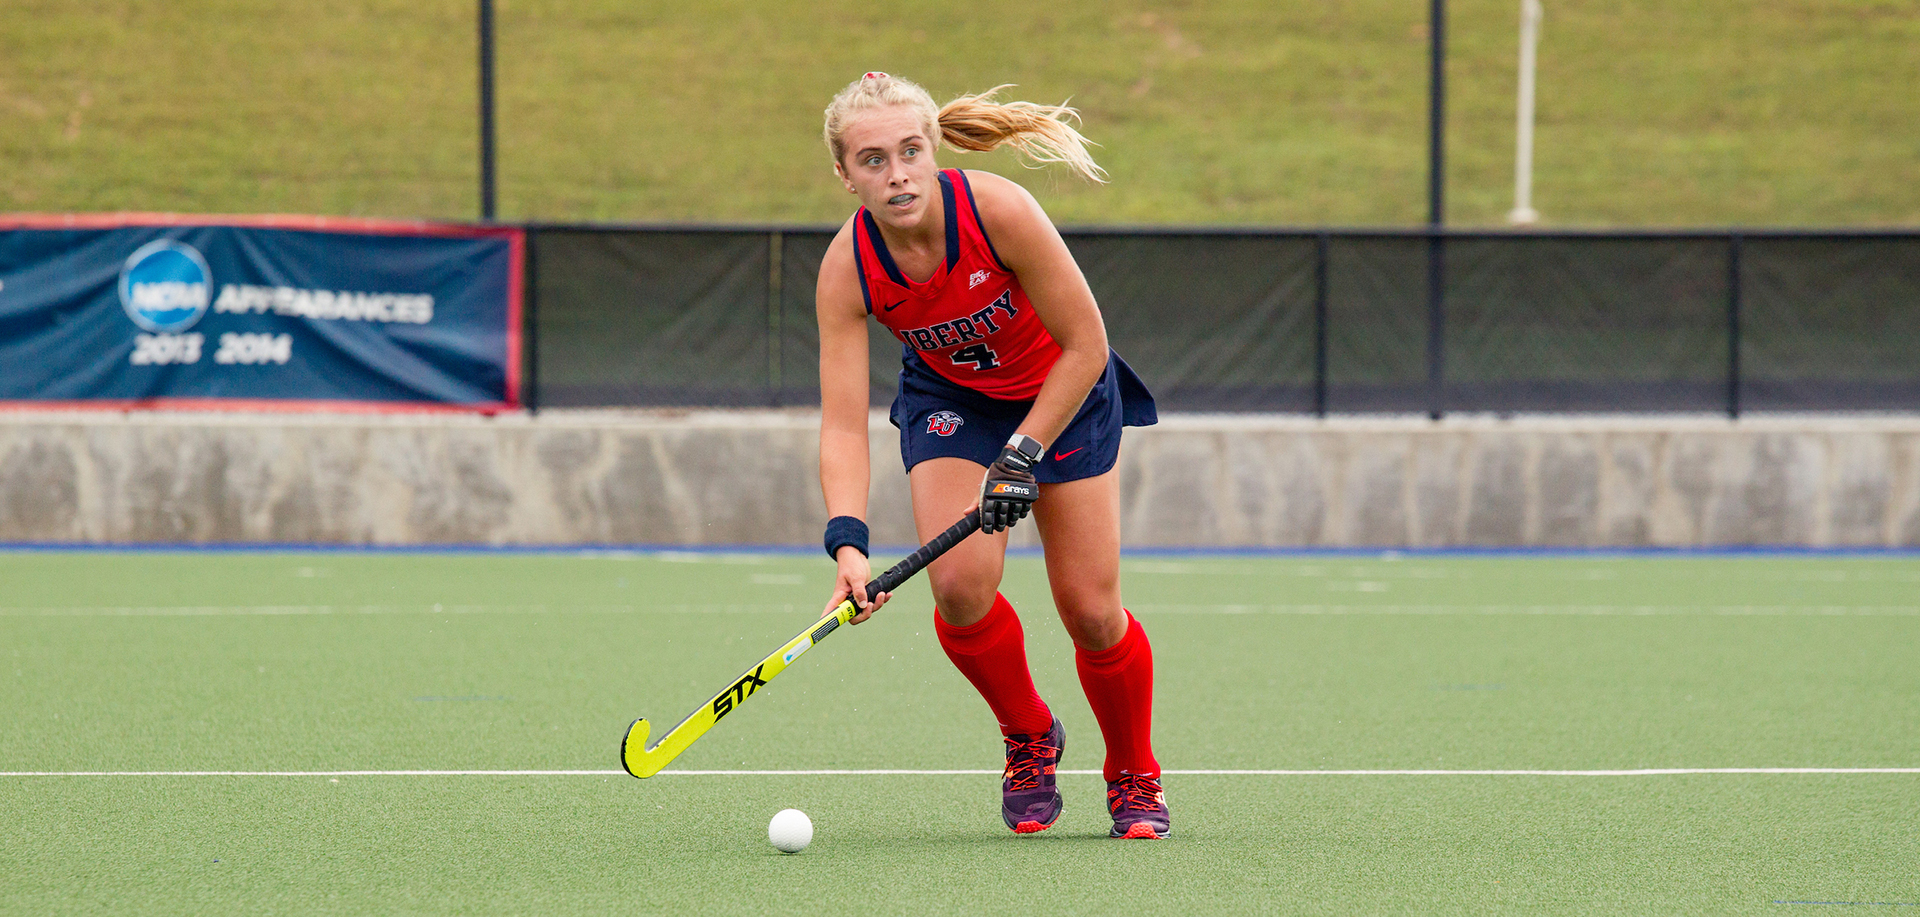 Field Hockey Focus with Annika Roberts